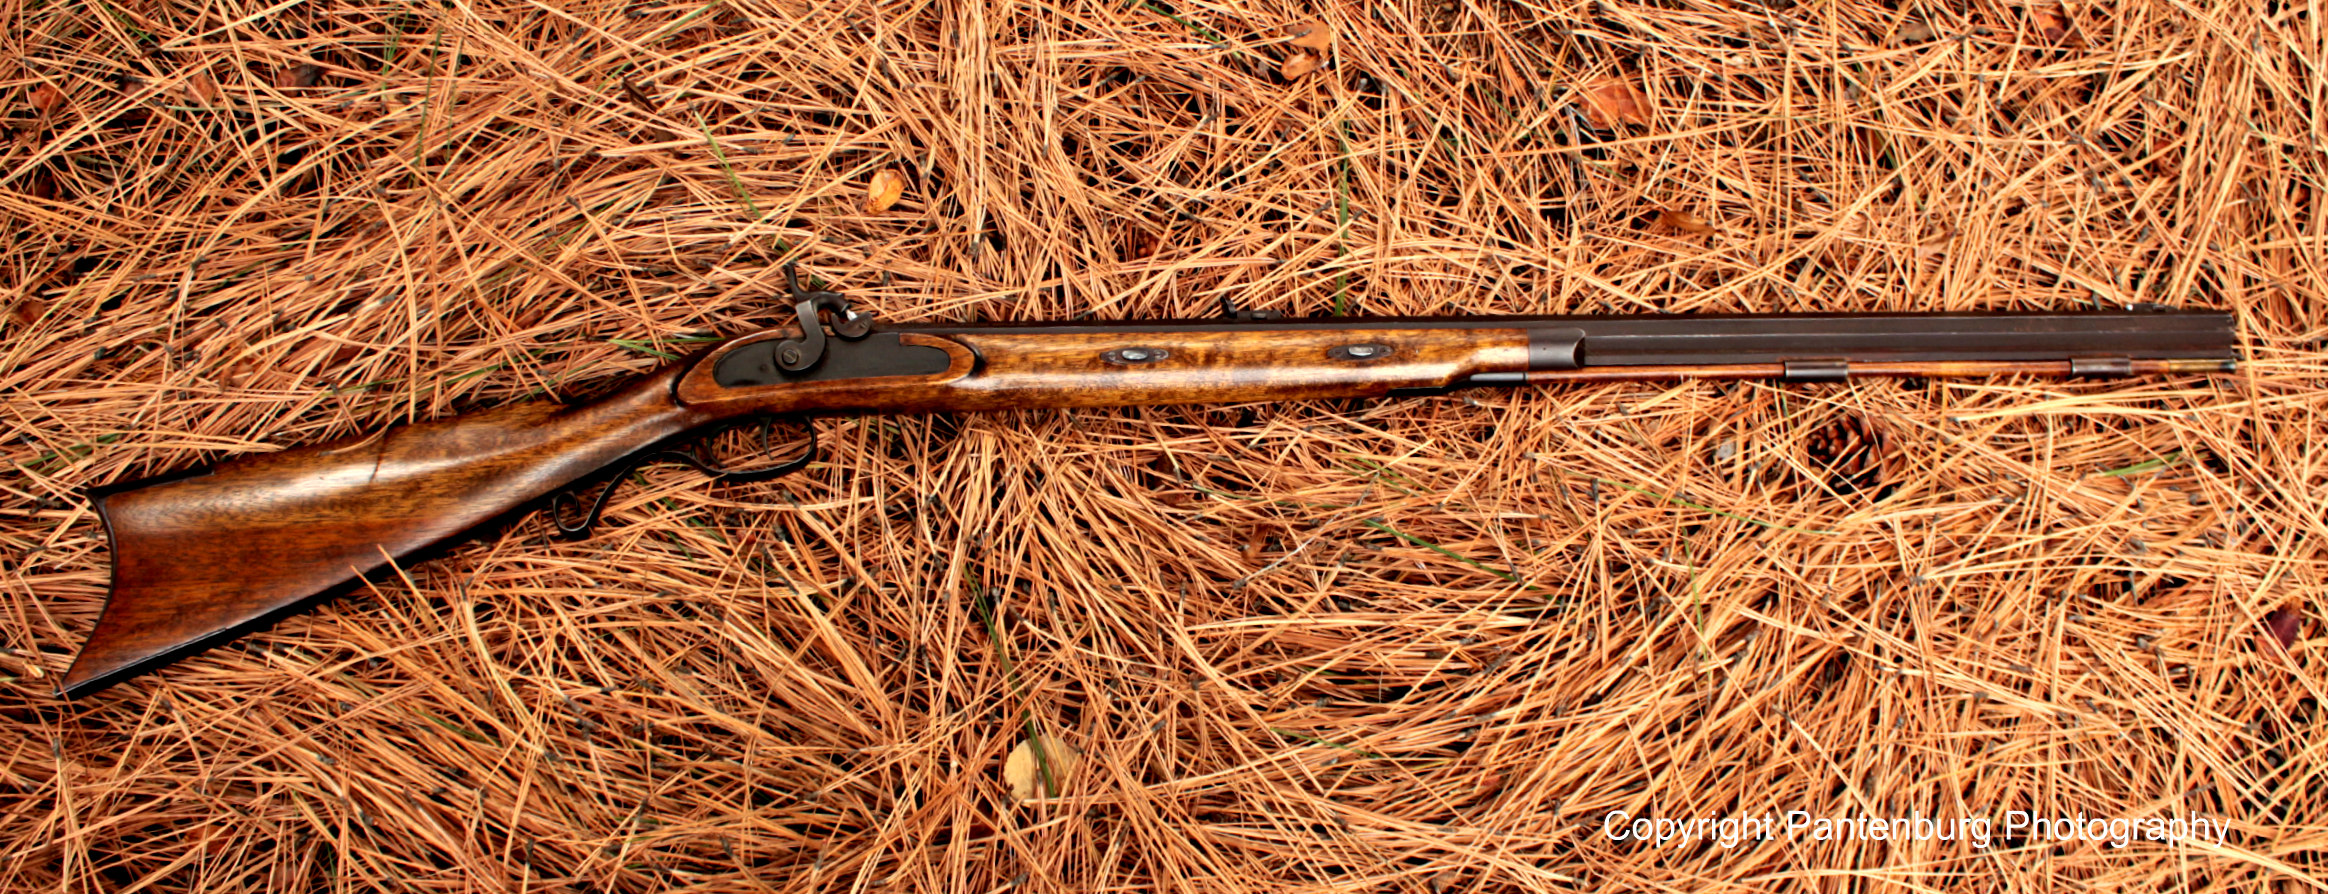 I made this .50 caliber Lyman Great Plains Rifle from a kit in the early 80s. It's one of my favorite hunting rifles.